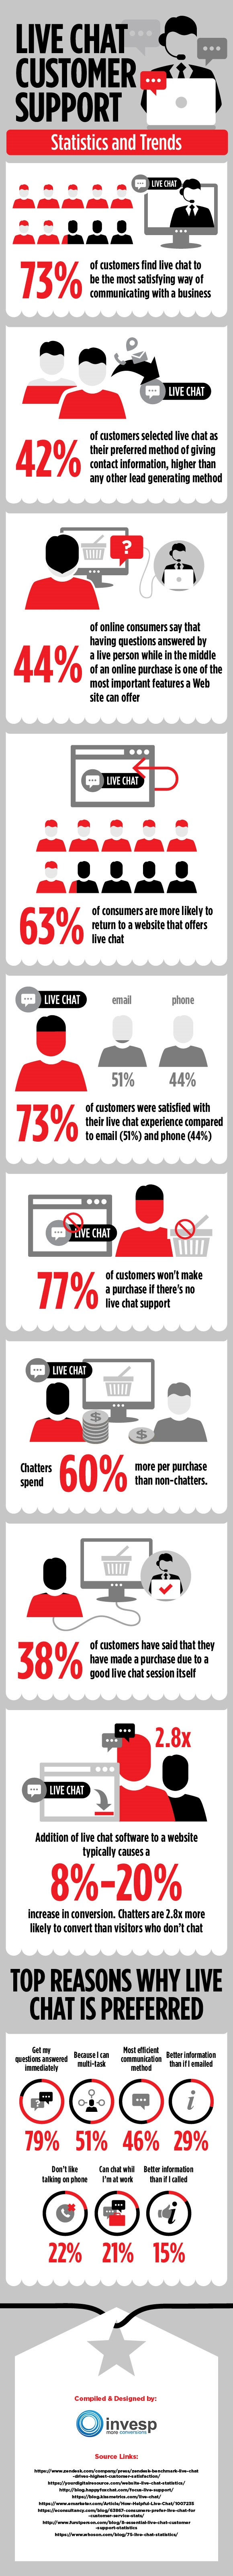 Why Customer Service Live Chat Support is the Future of Marketing [Infographic]